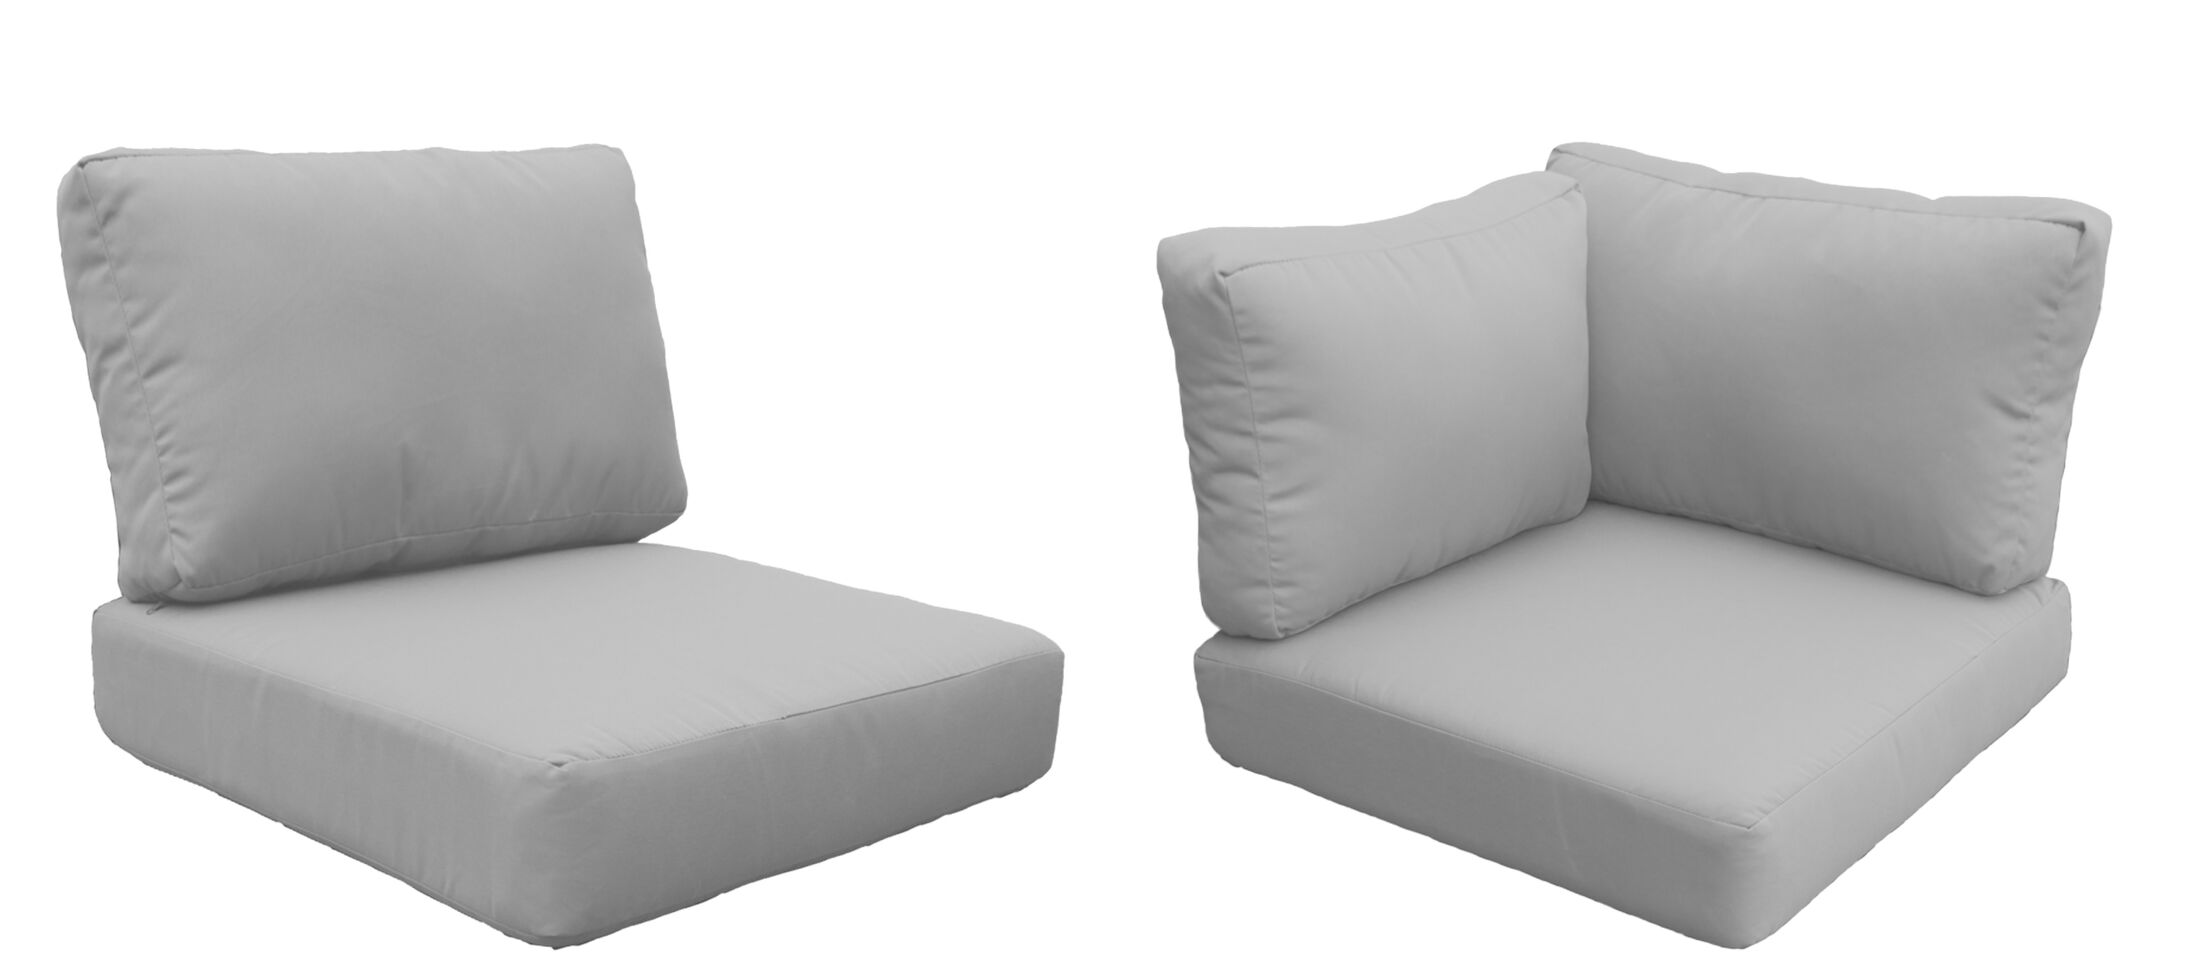 Eldredge 15 Piece Outdoor Cushion Set Fabric: Gray